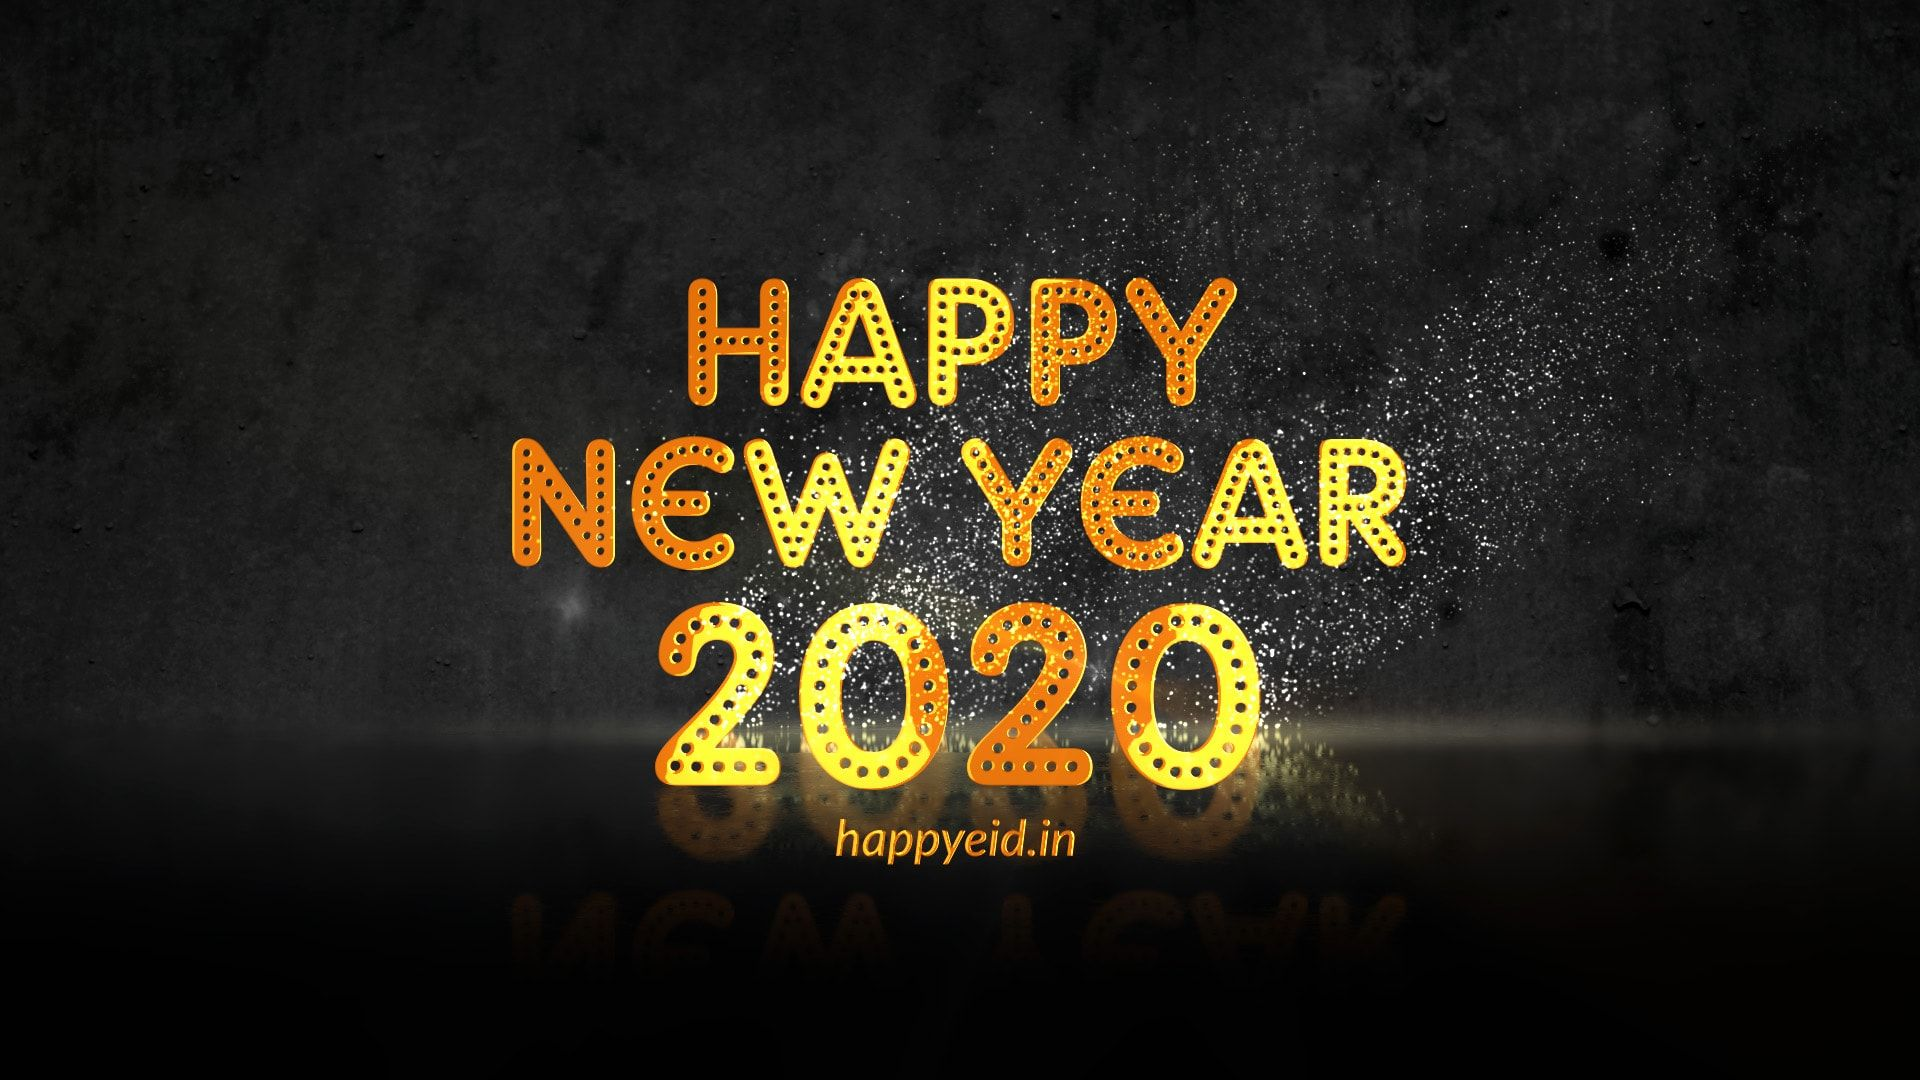 Happy New Year 2020 new wallpaper